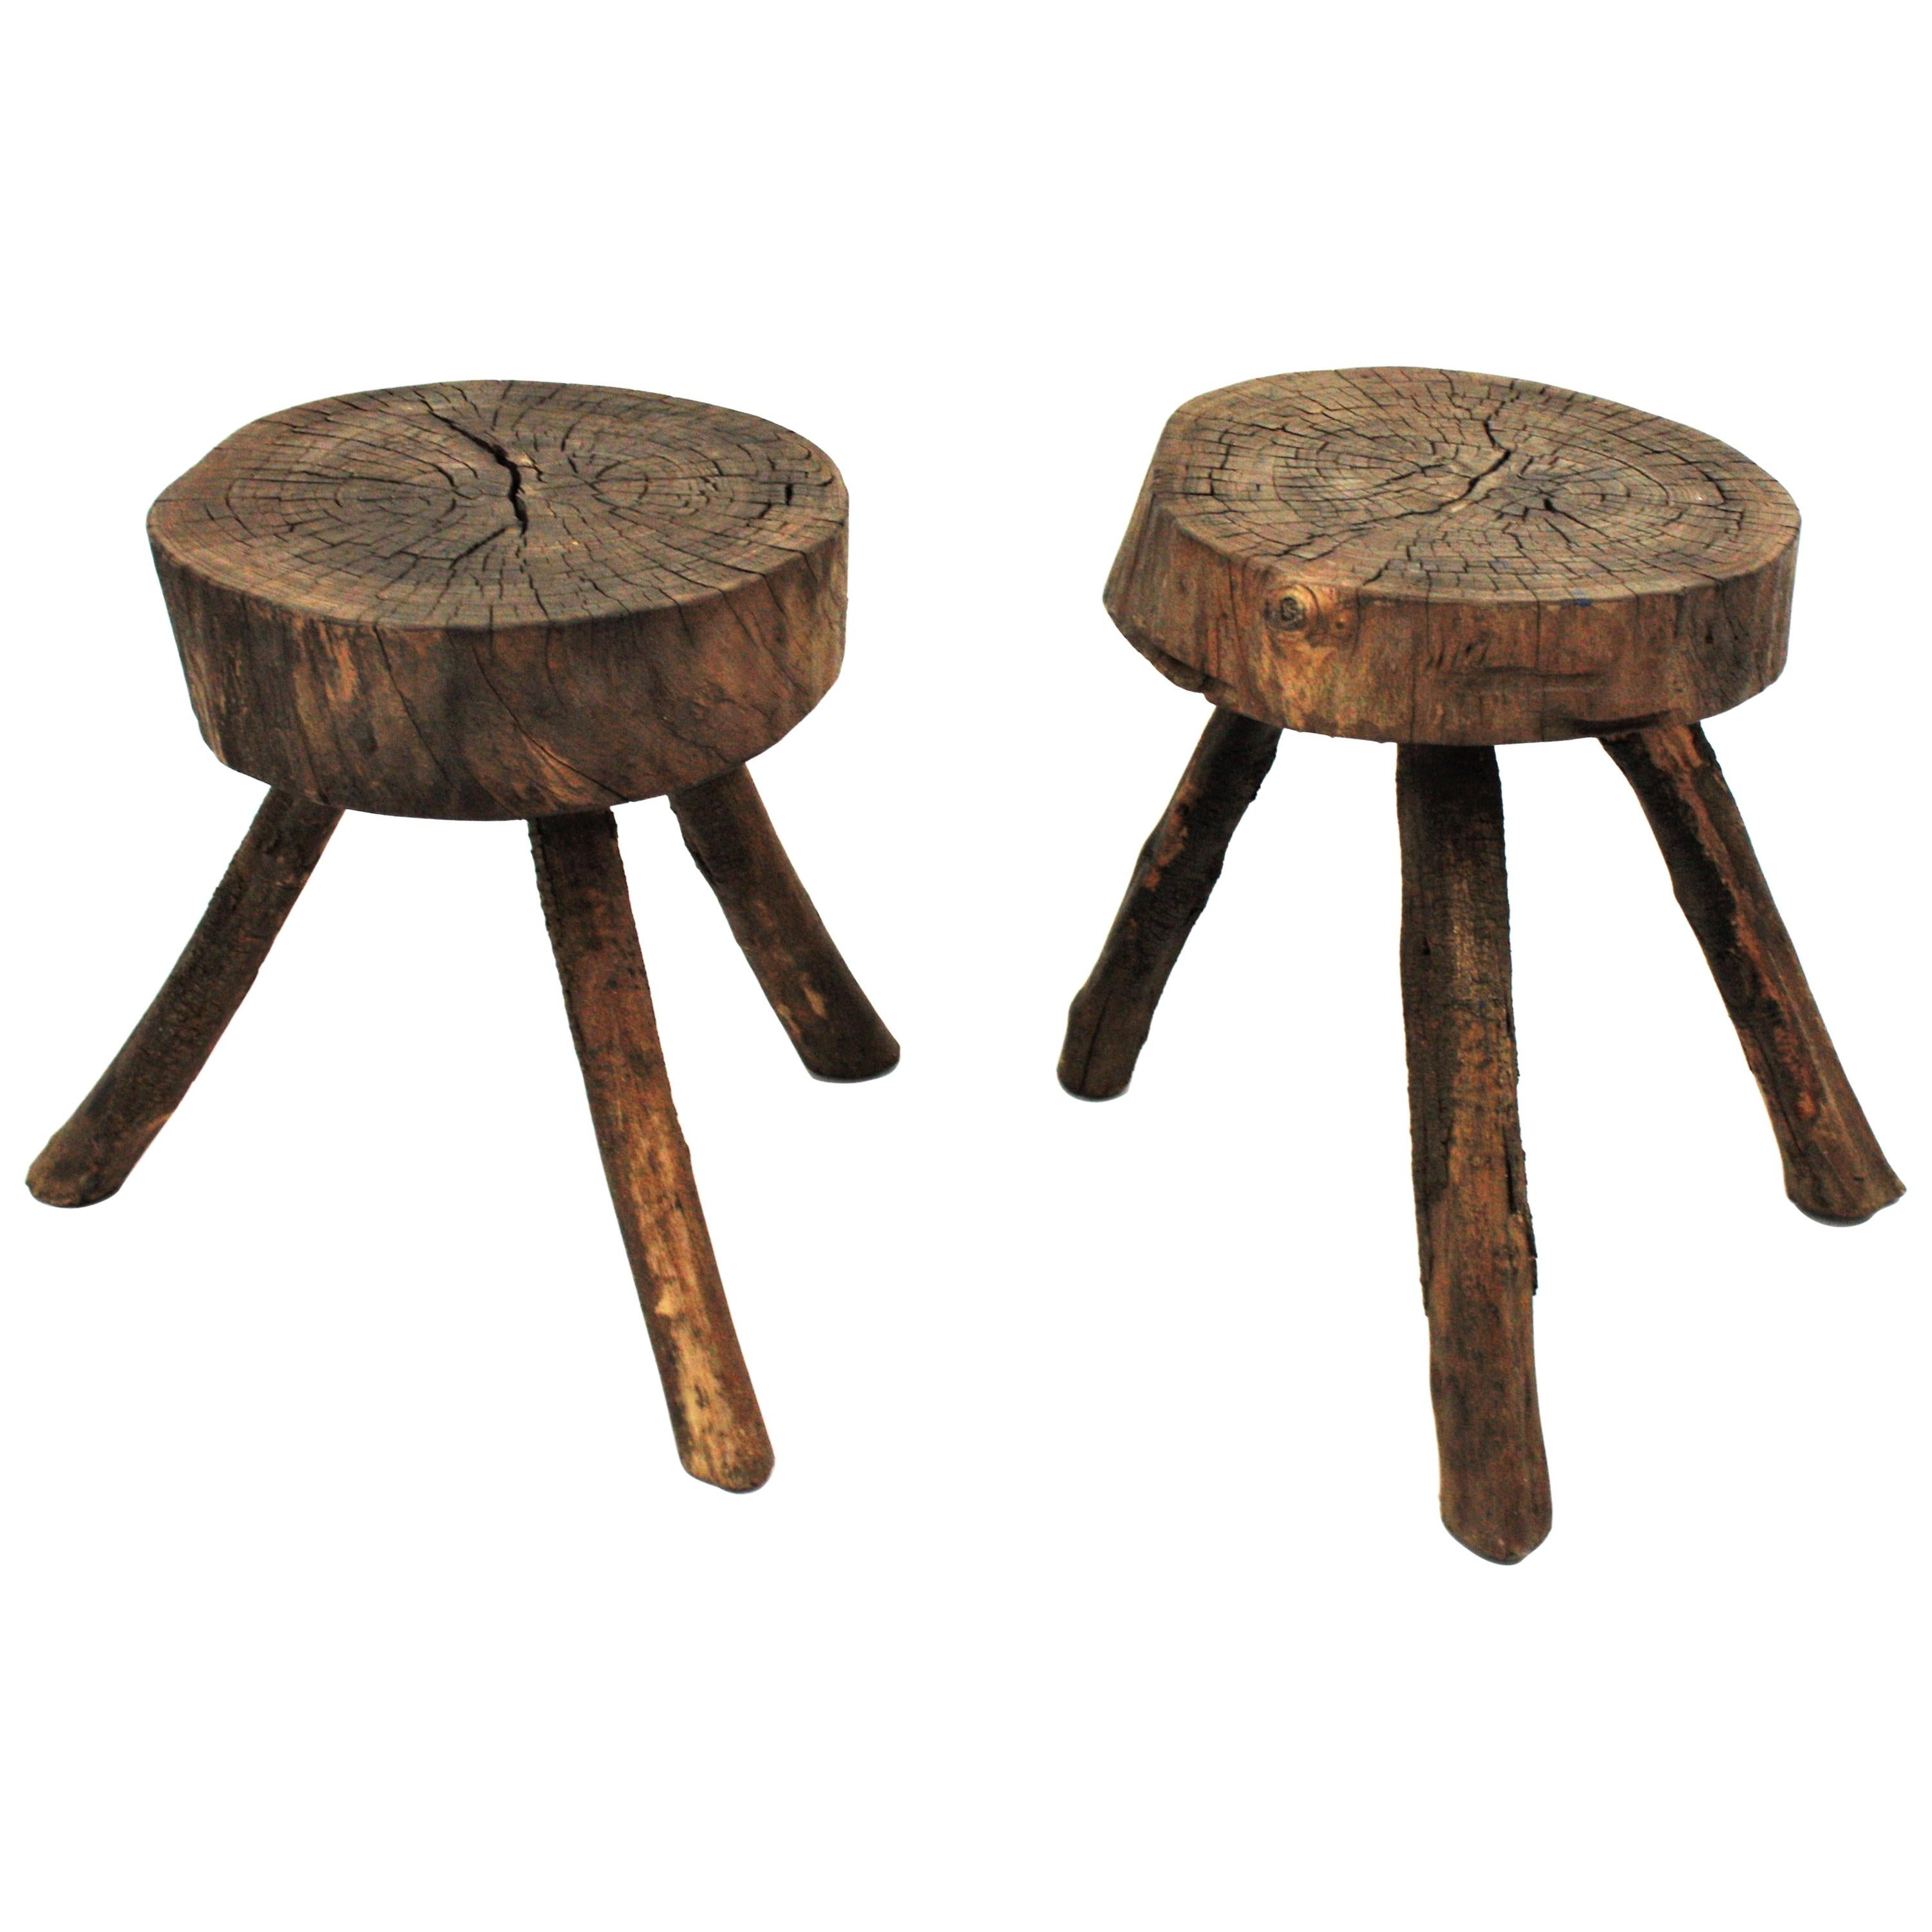 Pair of Spanish Rustic Tripod Stools or Side Tables